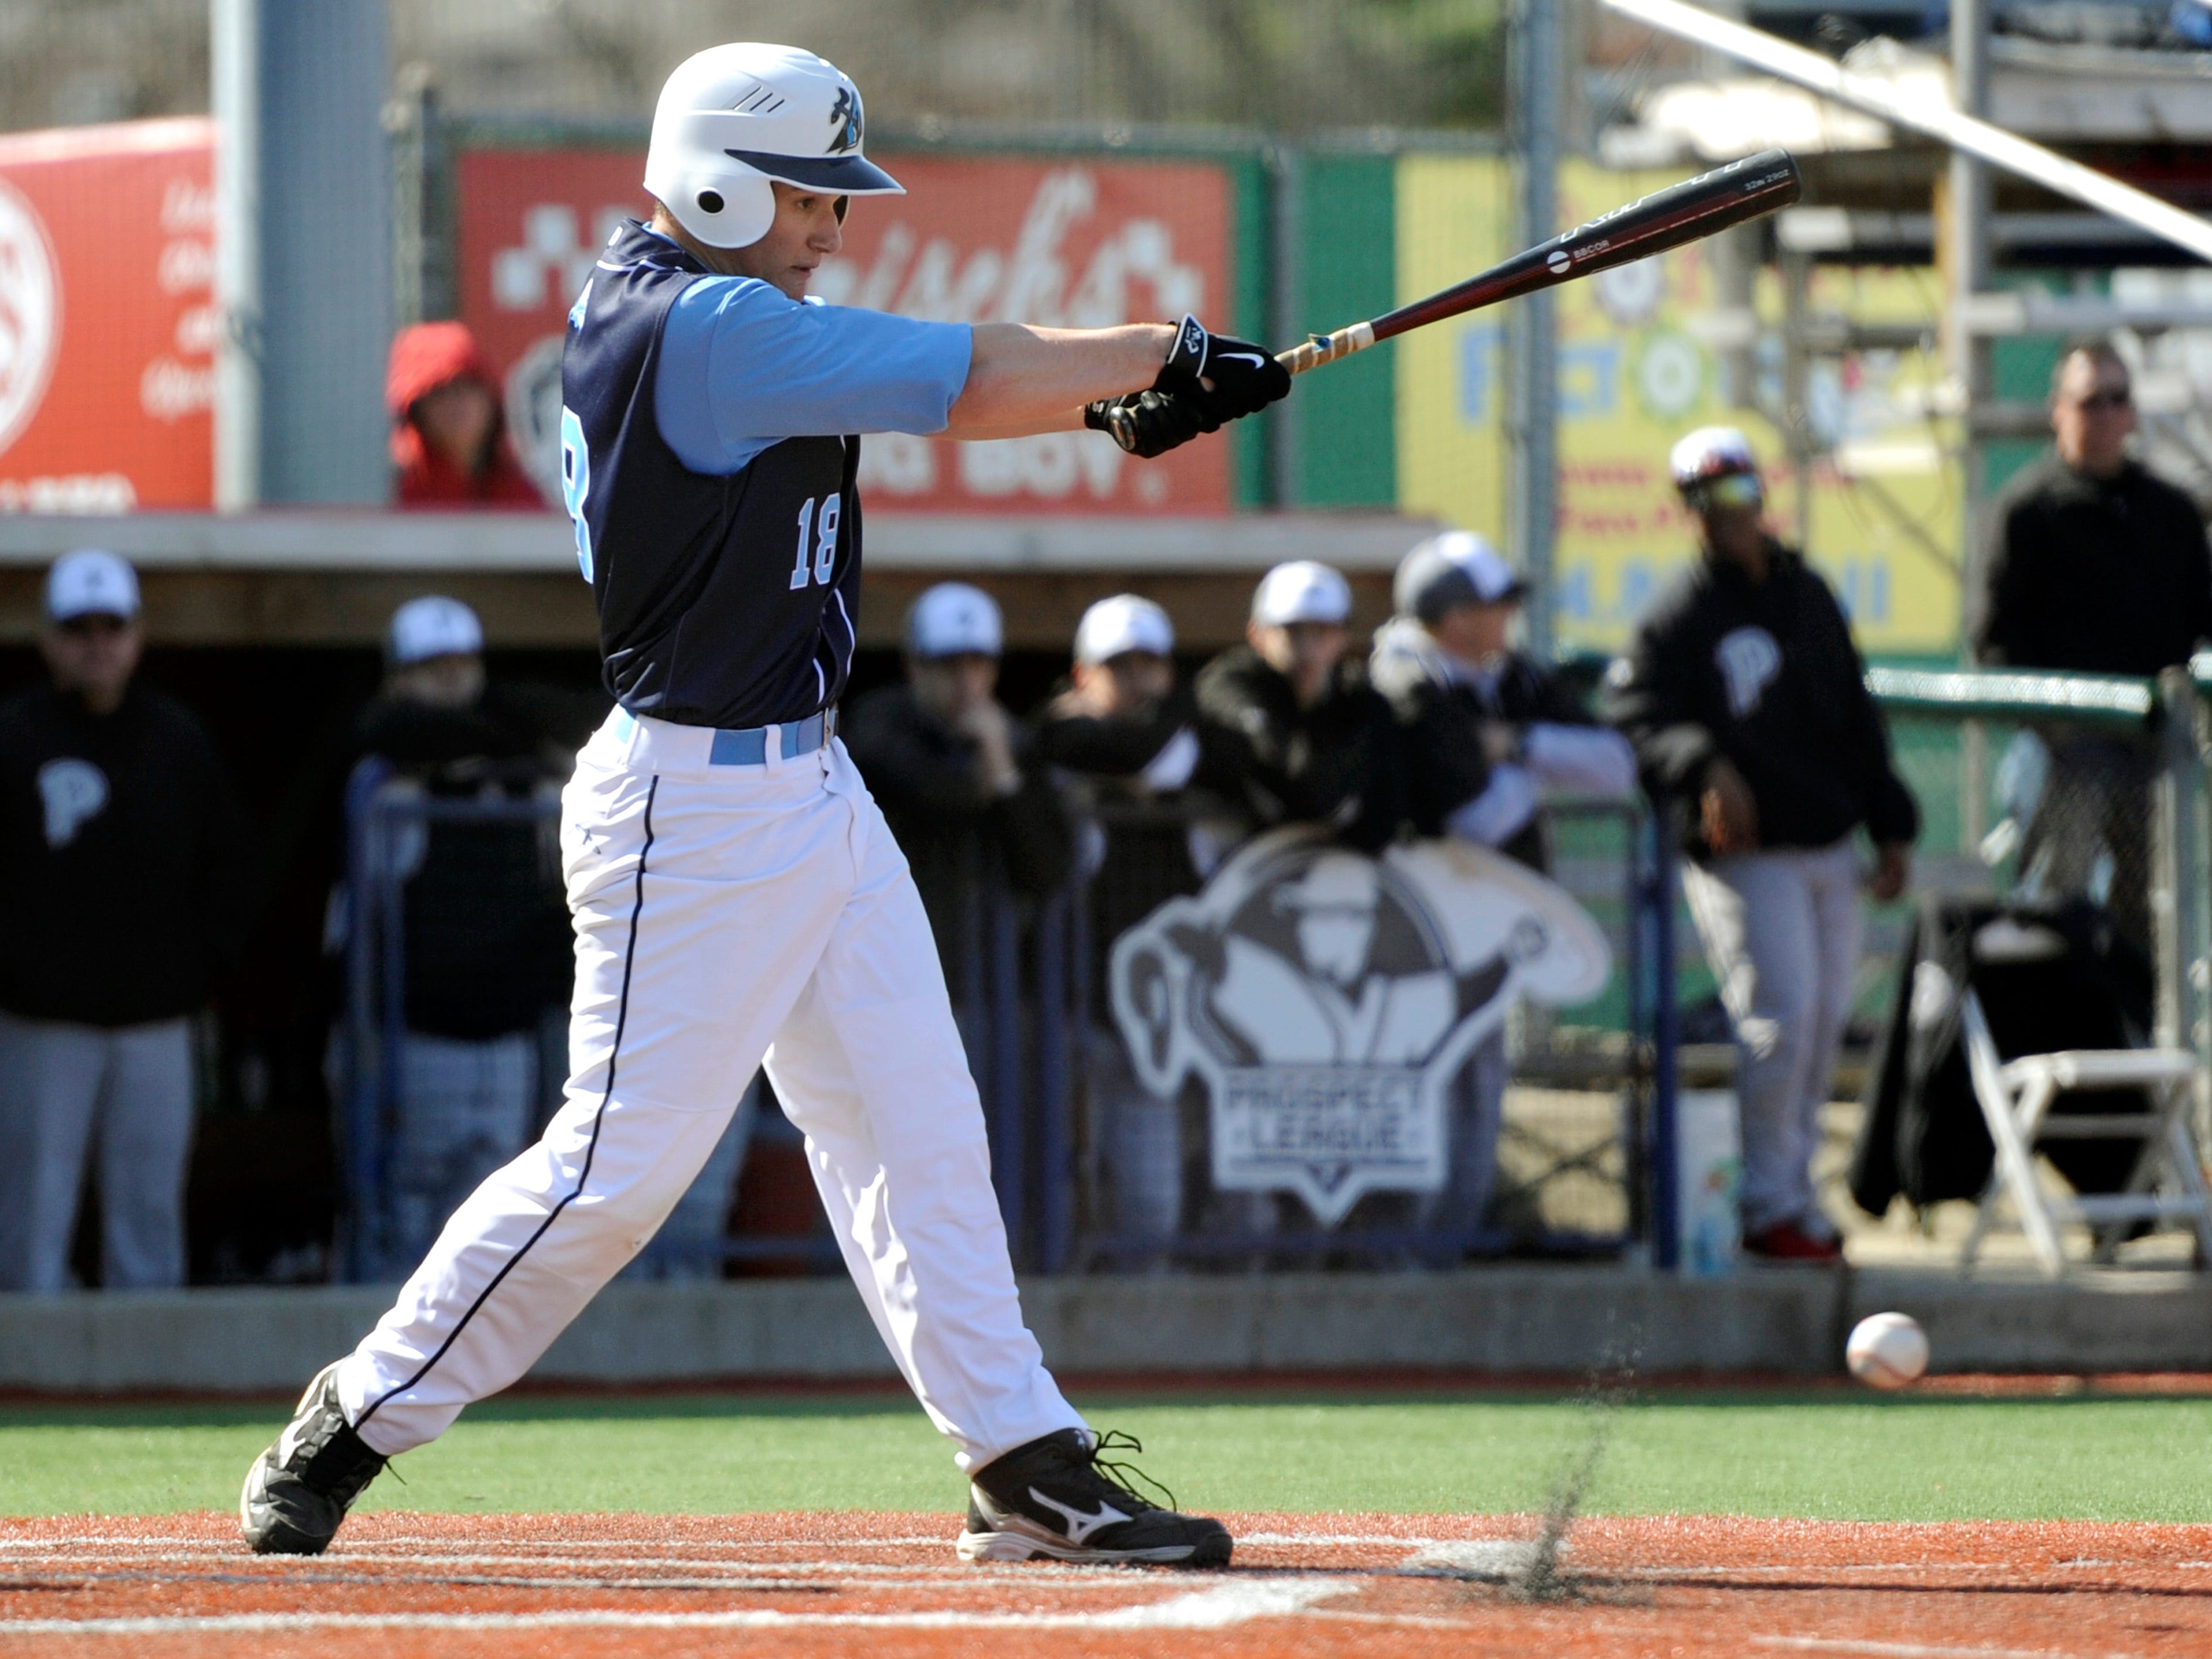 Adena's Eli Kunkel is just one of the area's great leadoff hitters who serve as catalysts for their team's offenses.